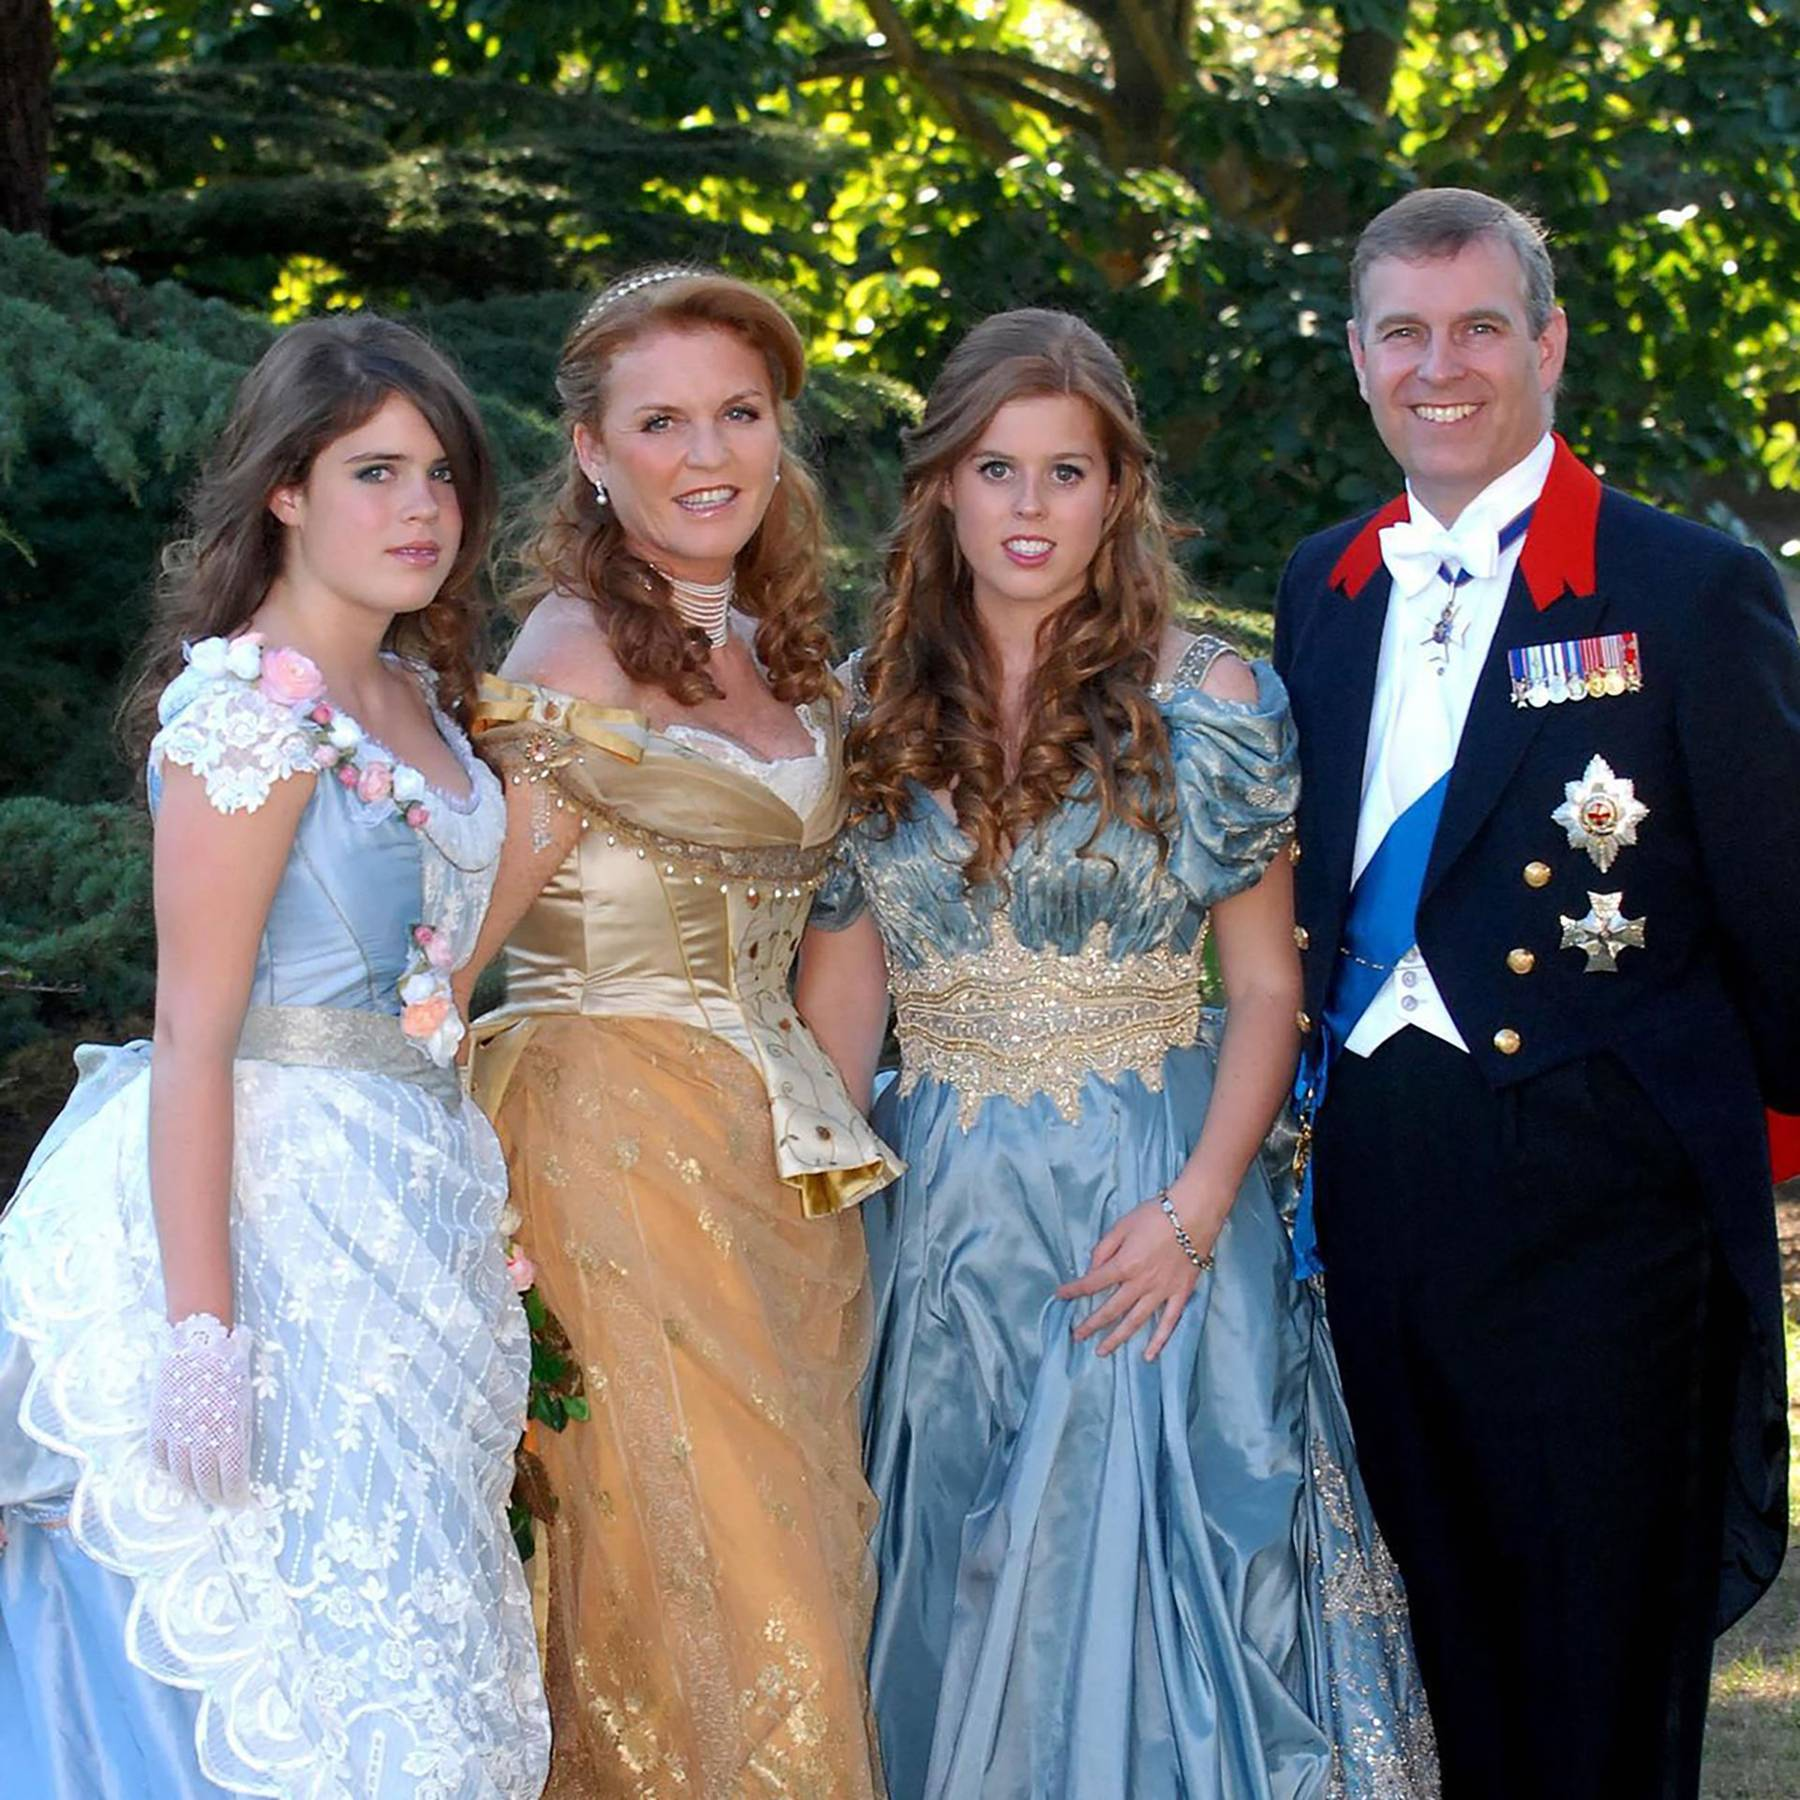 A photograph of a trio of very unwelcome guests emerges from Princess Beatrice's 18th birthday party